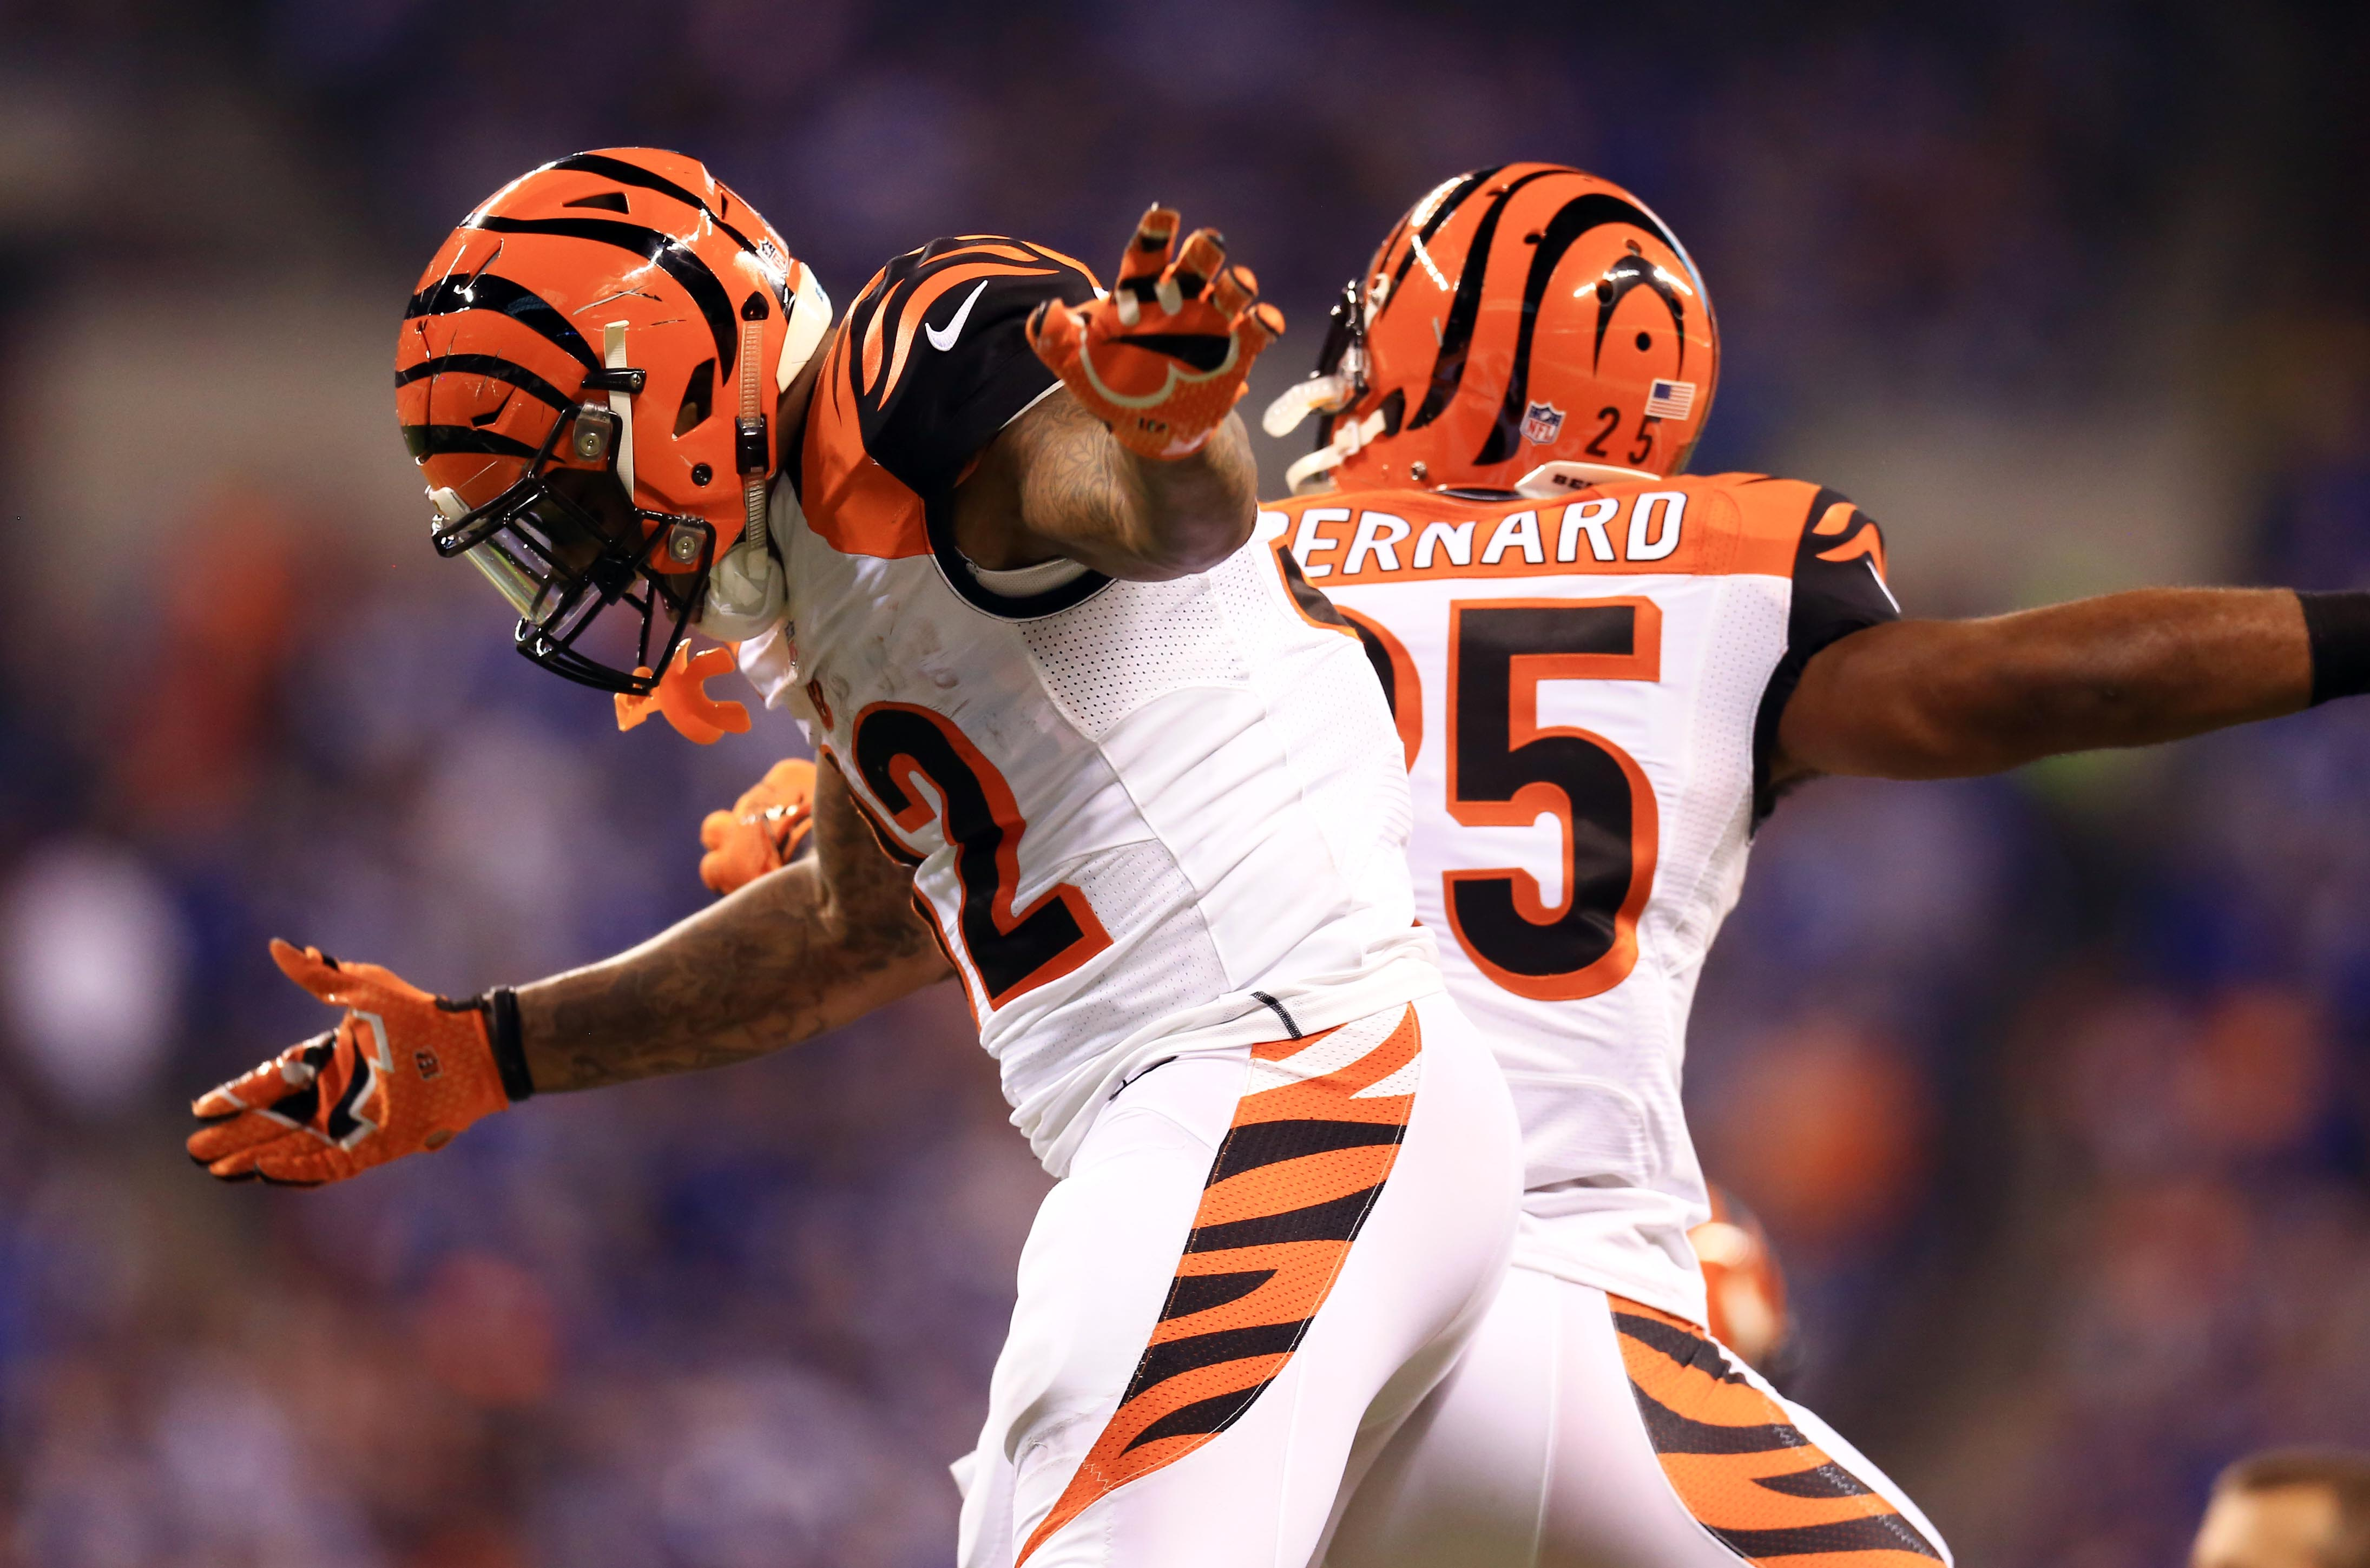 8313536-nfl-afc-wild-card-playoff-cincinnati-bengals-at-indianapolis-colts